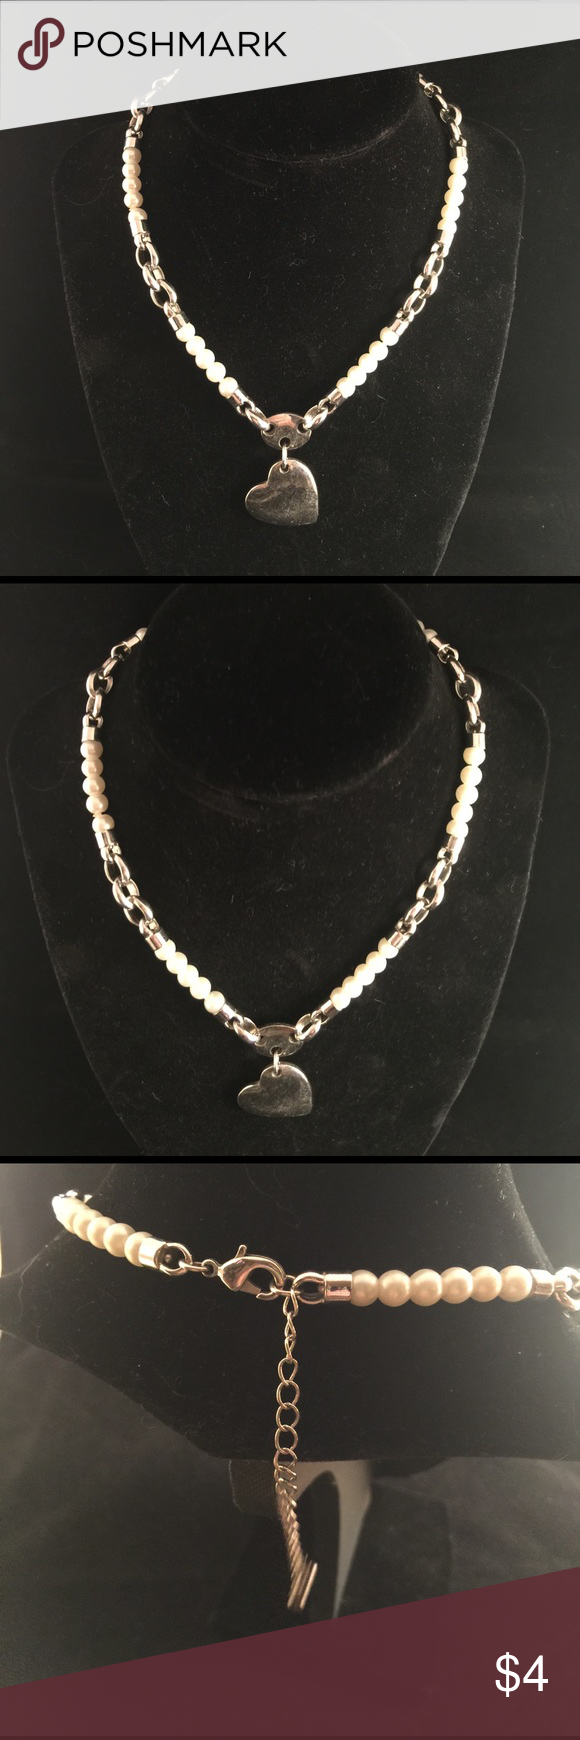 #6oz Silver Heart & White Bead Necklace #c Heart has notable wear Jewelry Necklaces